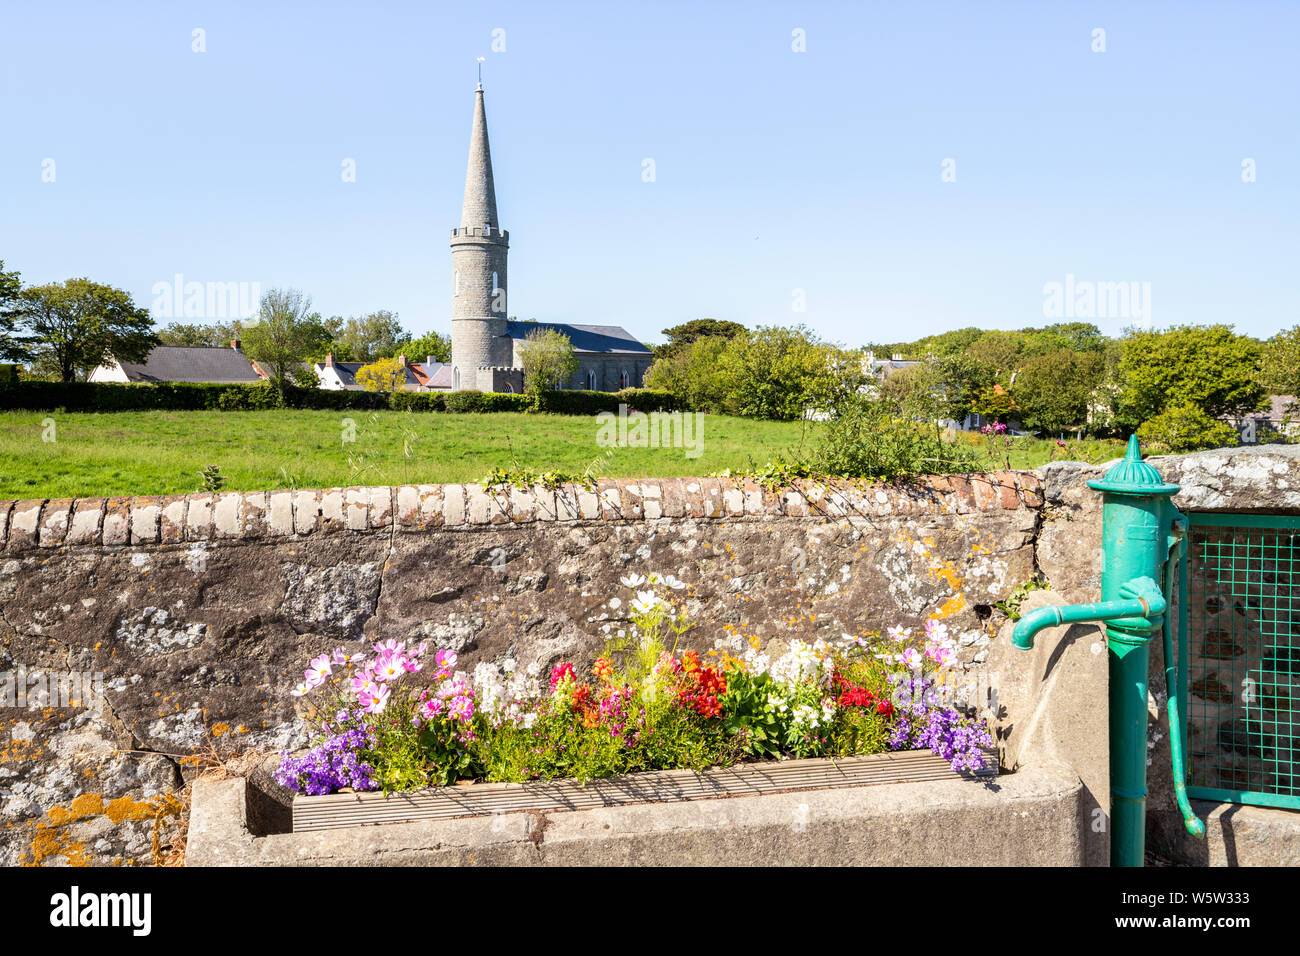 Flowers in an old water trough next to a pump in Torteval, Guernsey, Channel Islands UK Stock Photo